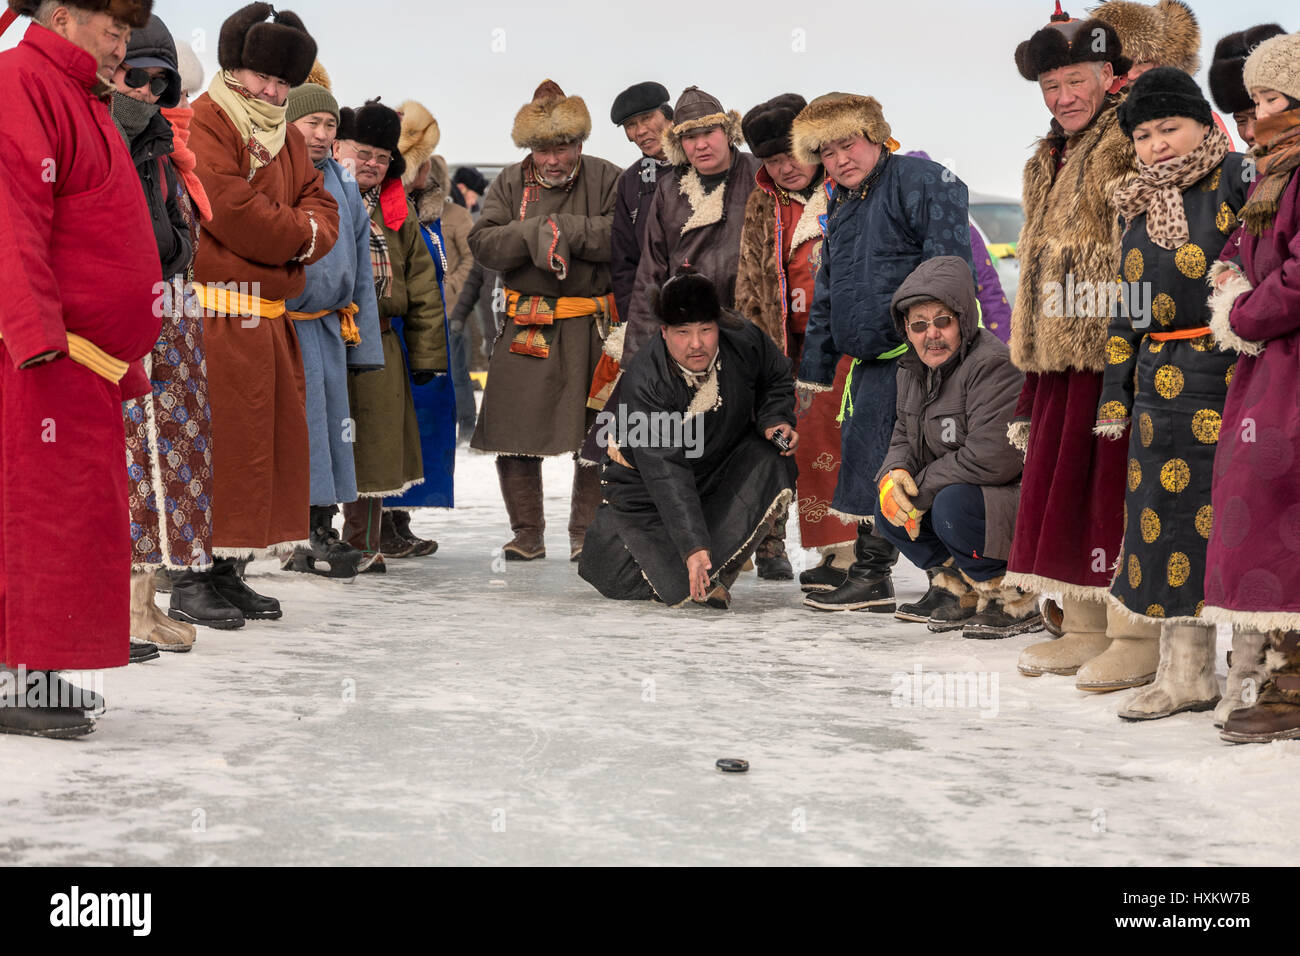 Local community celebrating the recovery of their lake from destruction by a  mining company with an ice festival - Stock Image